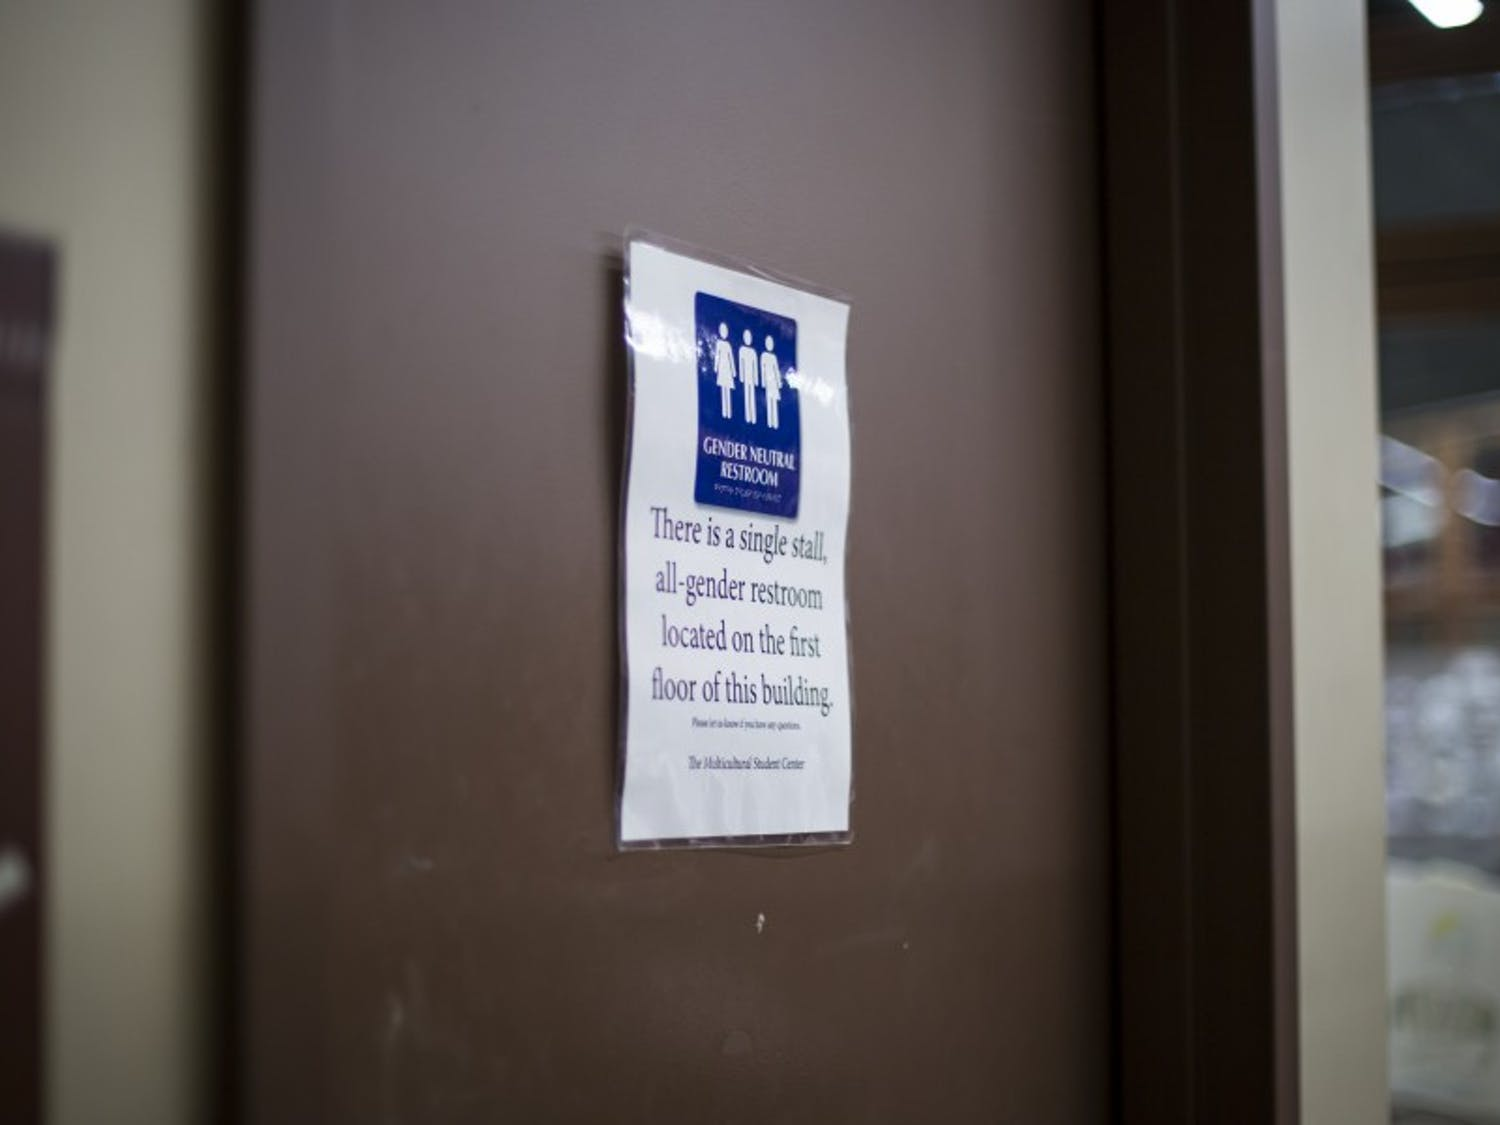 ASM committee pushes petition urging university restroom inclusivity